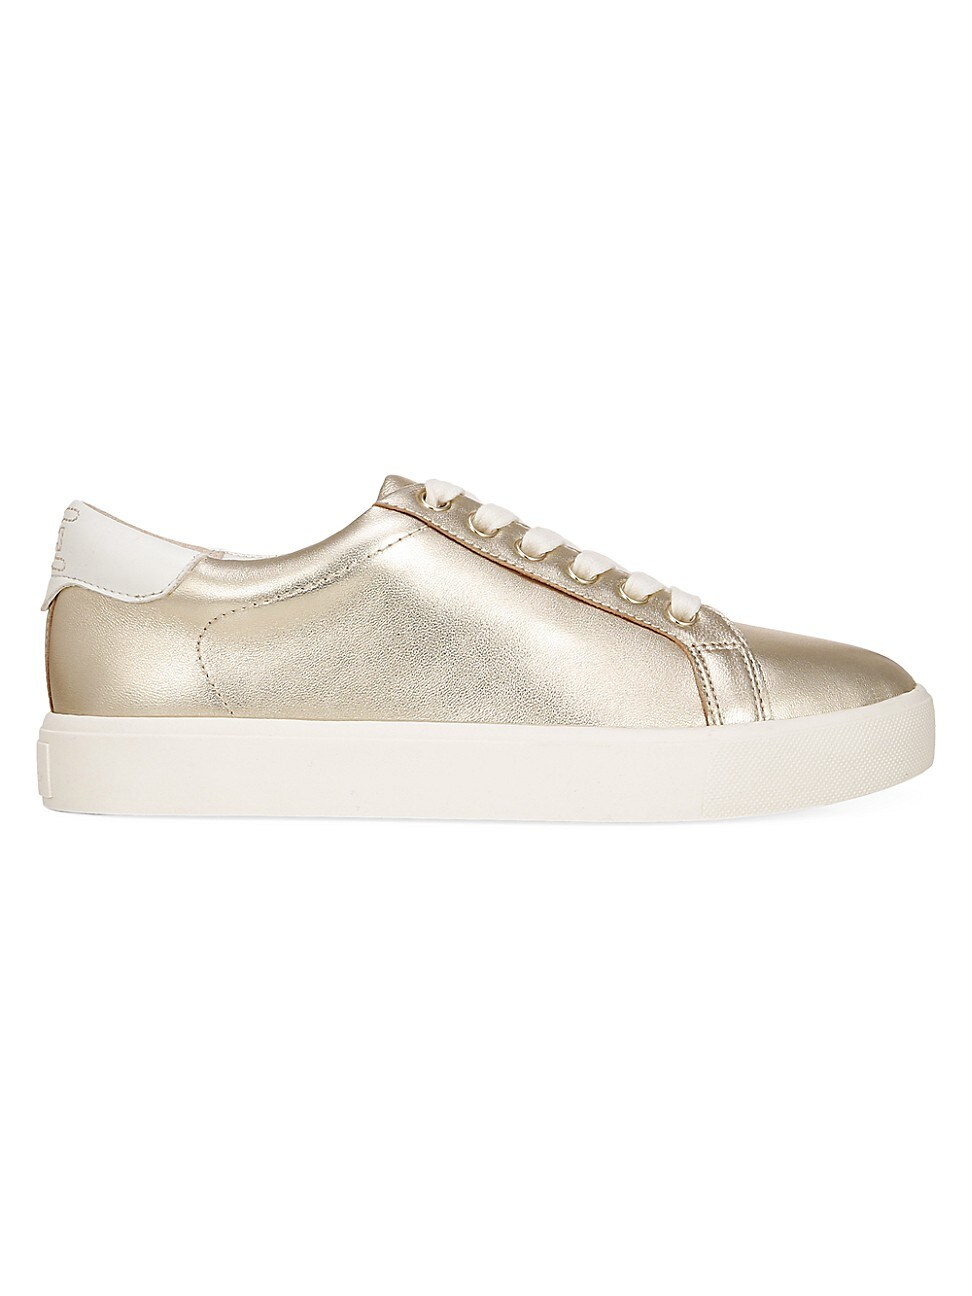 Sam Edelman WOMEN'S ETHYL METALLIC LEATHER SNEAKERS